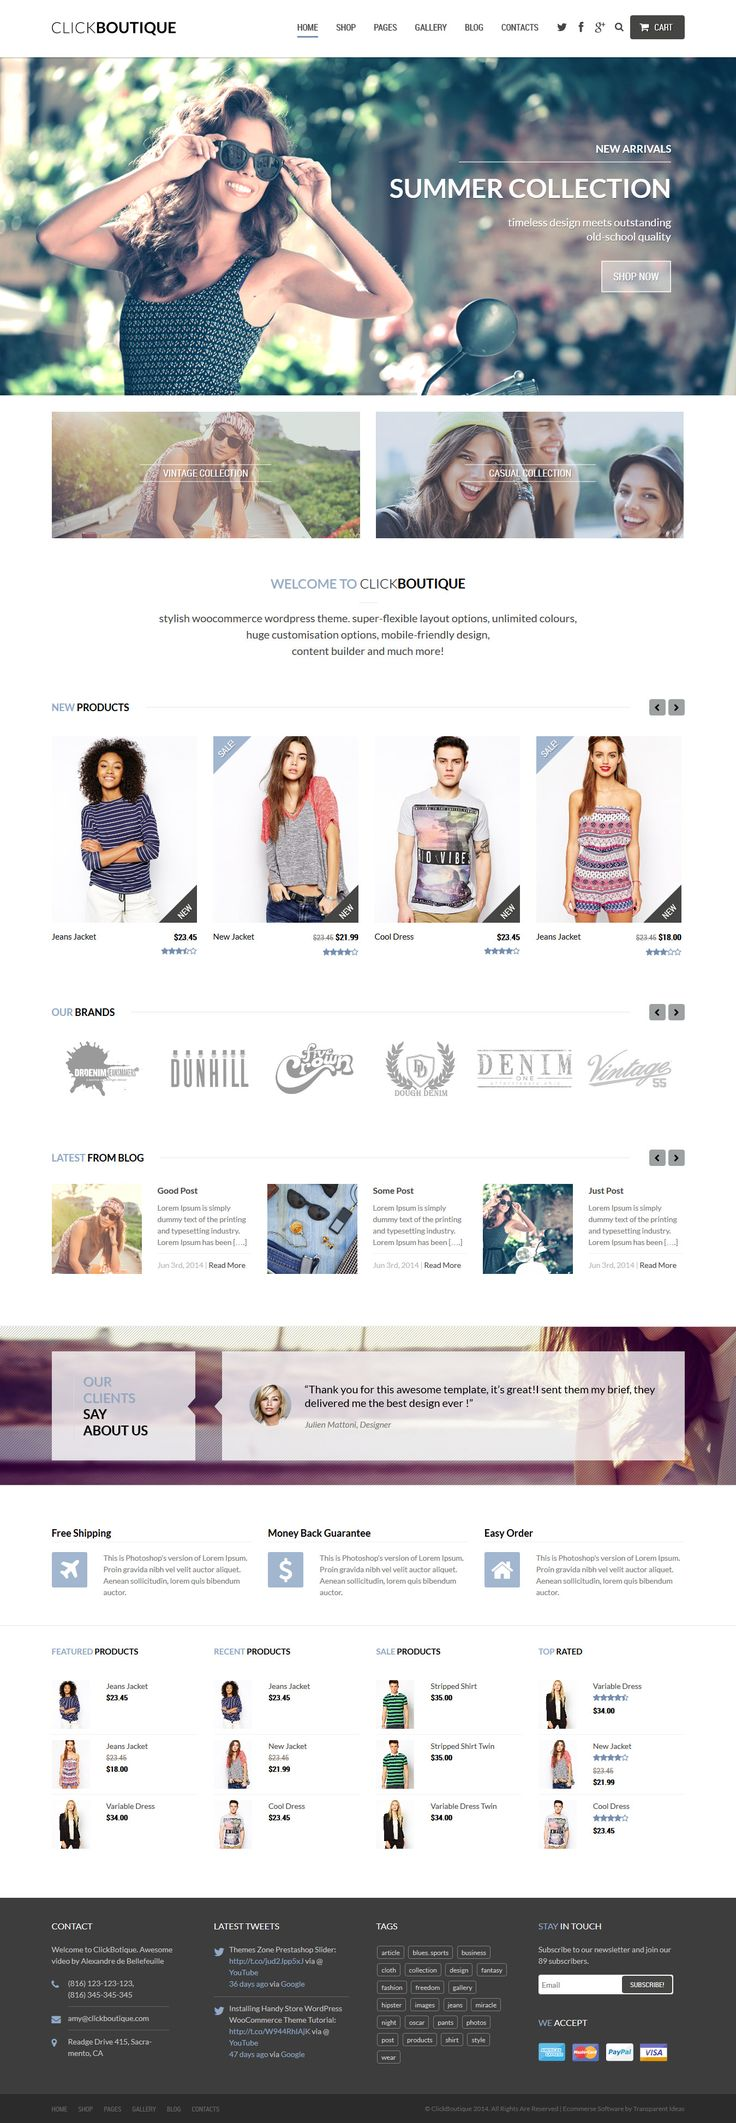 Click Boutique - Fashion Shop WordPress WooCommerce Theme #ecommerce #wordpress Live Preview & Download: http://themeforest.net/item/click-boutique-fashion-shop-wordpress-woocommerce-theme/8001338?ref=ksioks